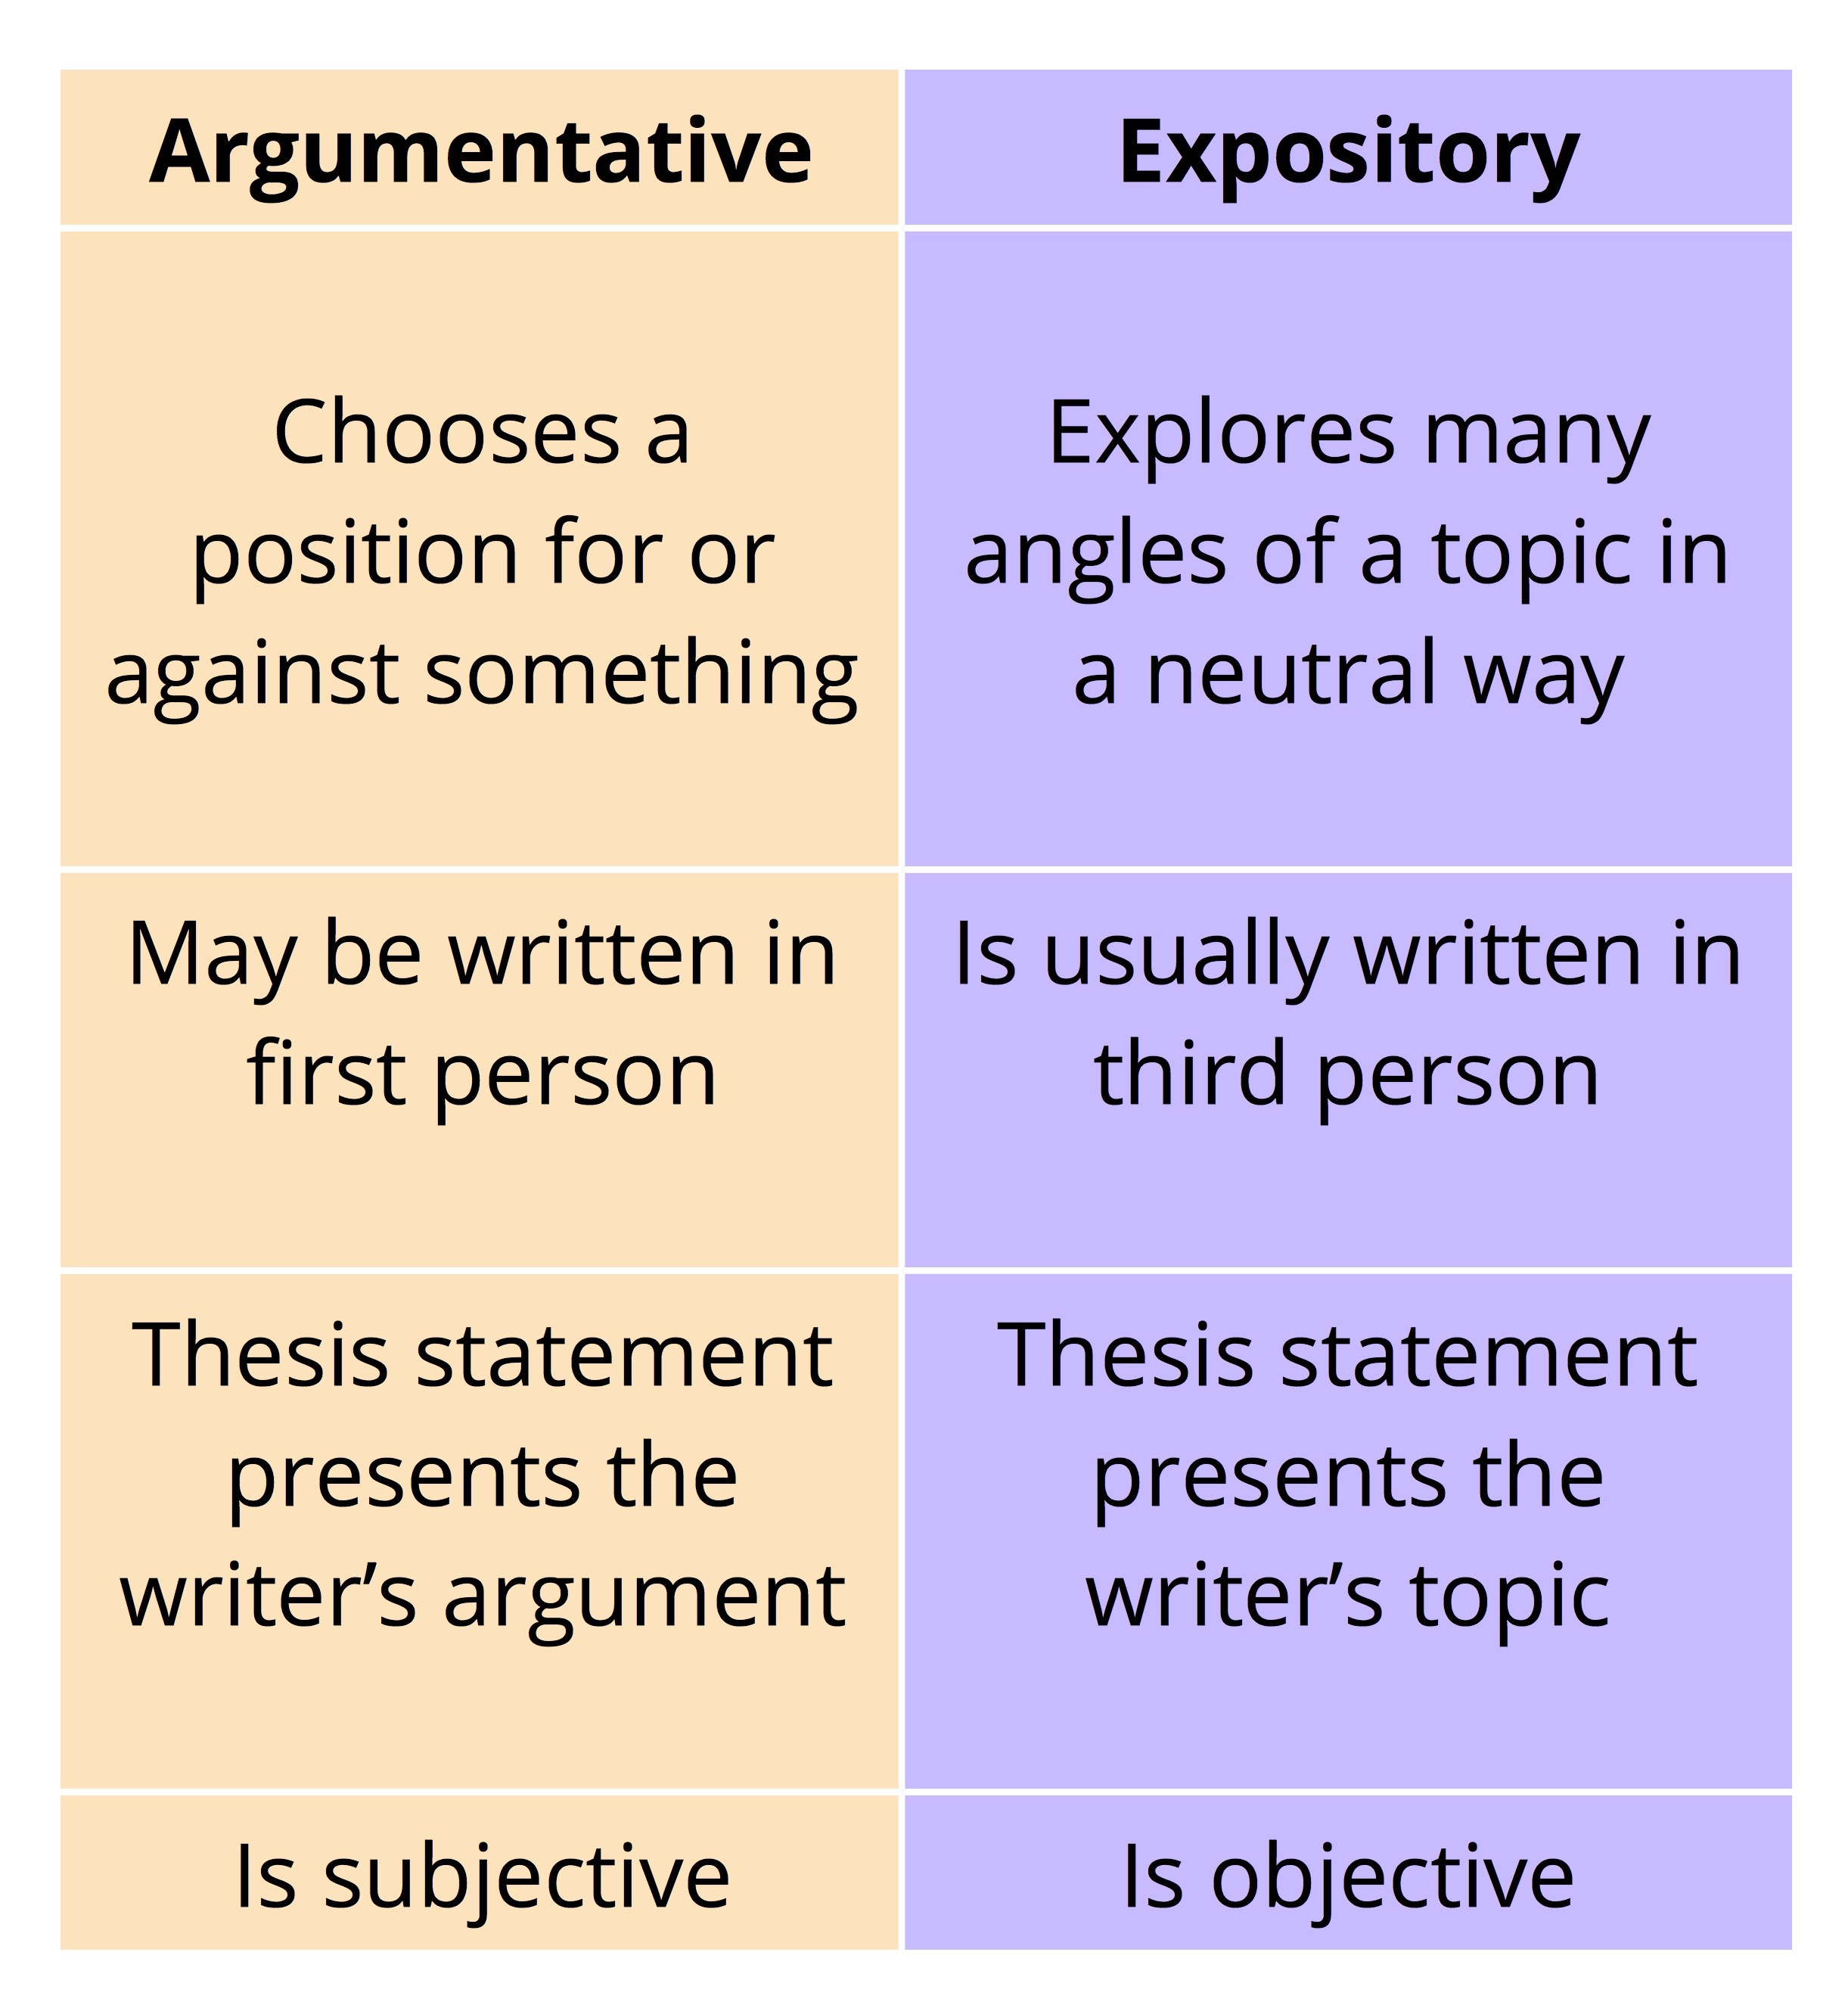 006 What Ispository Essayample How To Write An Tigers Start Argumentative Conclusion The Differences Between Anpository And E Body Paragraph Introduction Astounding Is A Expository Essay Good Topic Writing Reflective Full